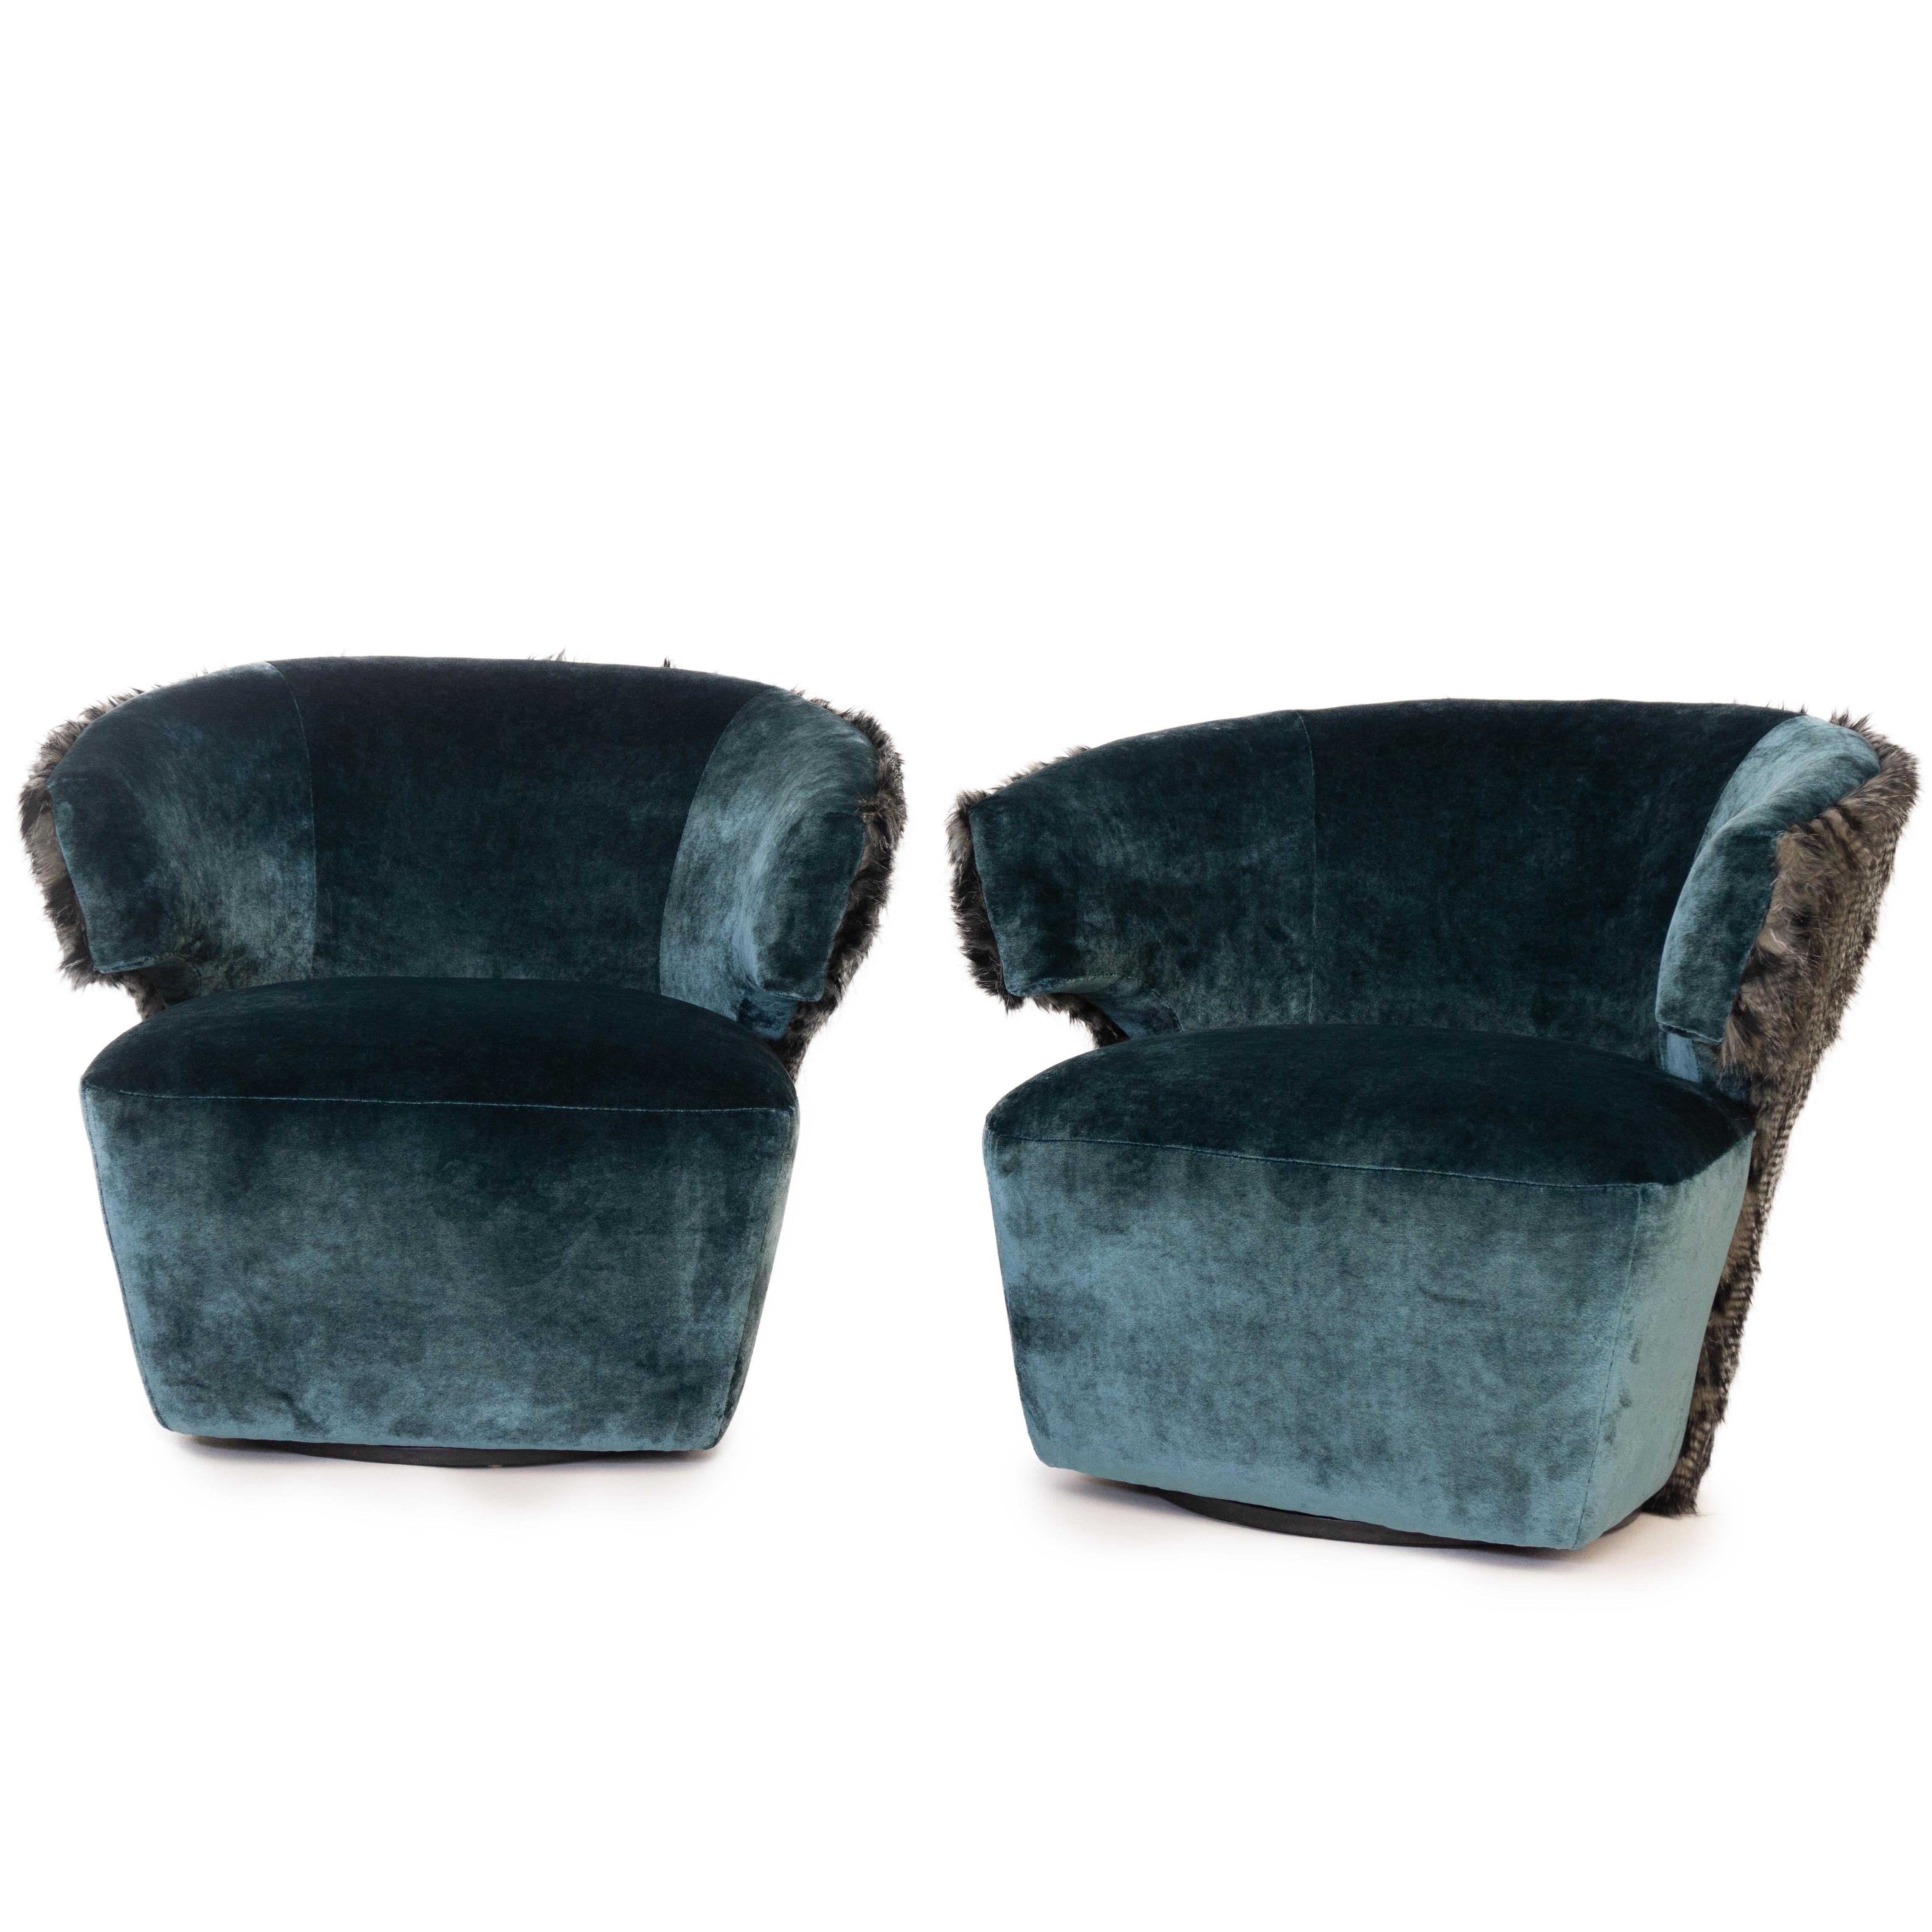 Astounding Modern Velvet Swivel Chairs With Faux Fur Pabps2019 Chair Design Images Pabps2019Com